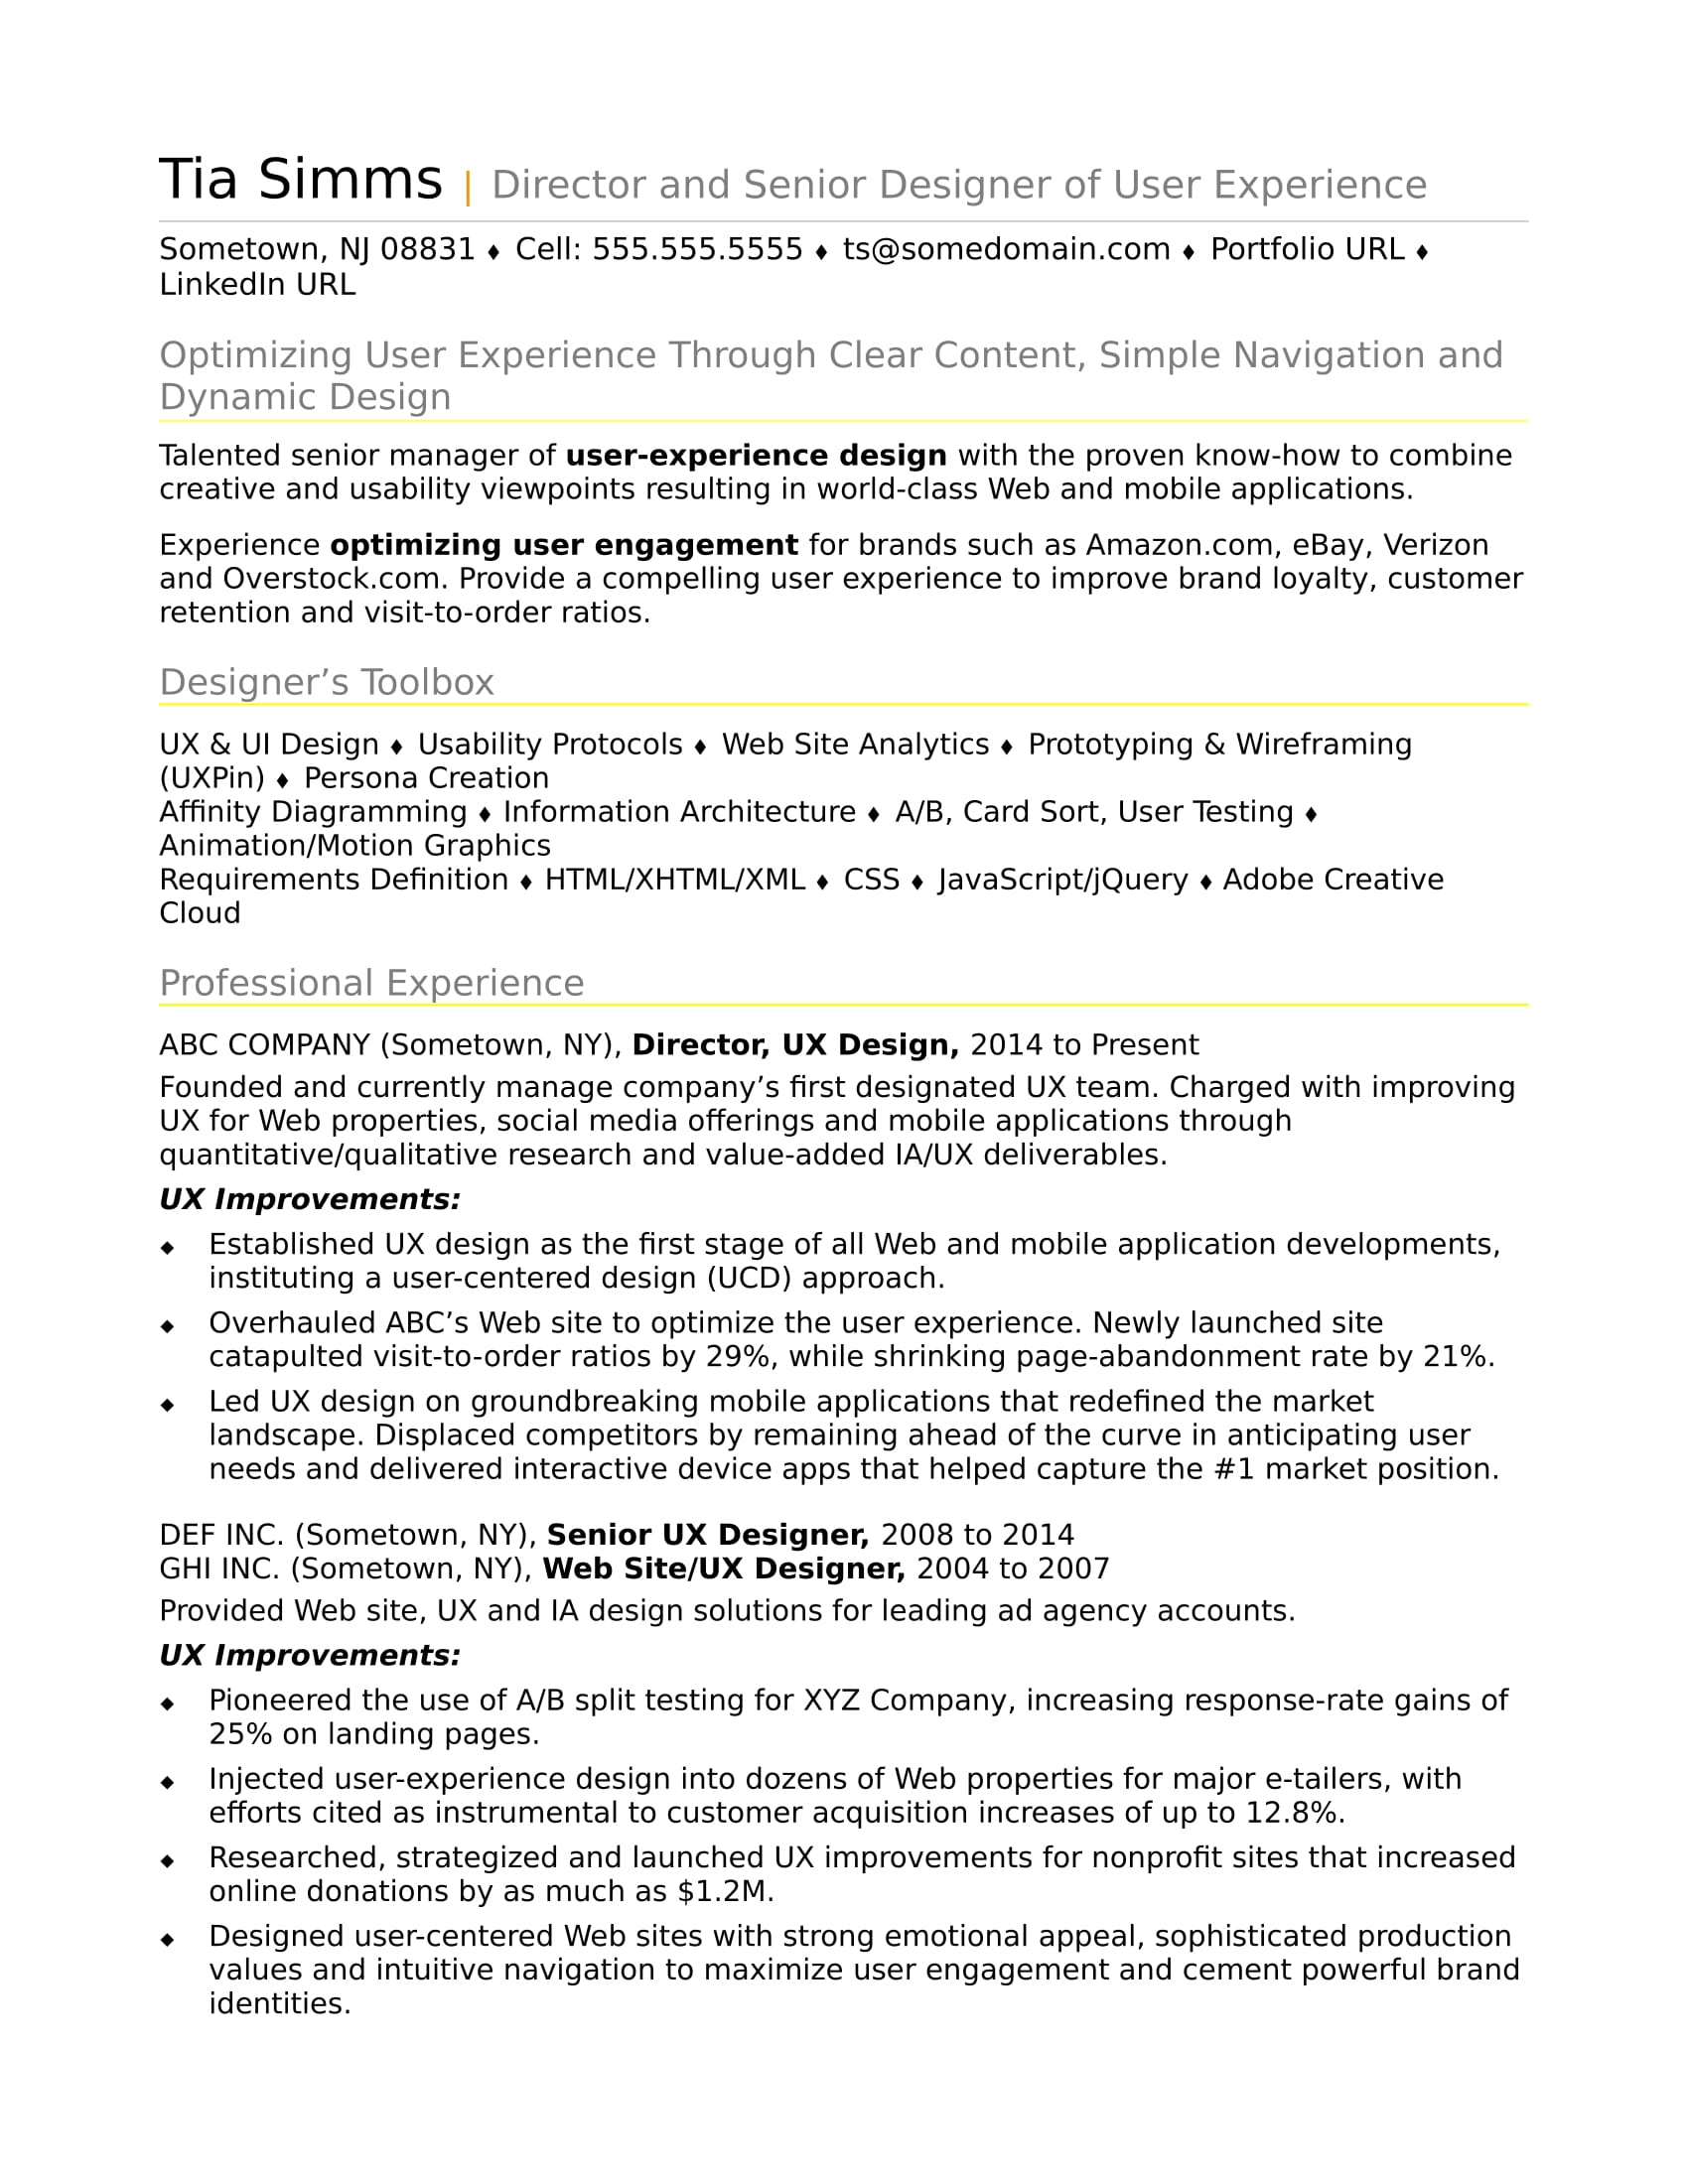 Sample Resume For An Experienced UX Designer  Resume Experience